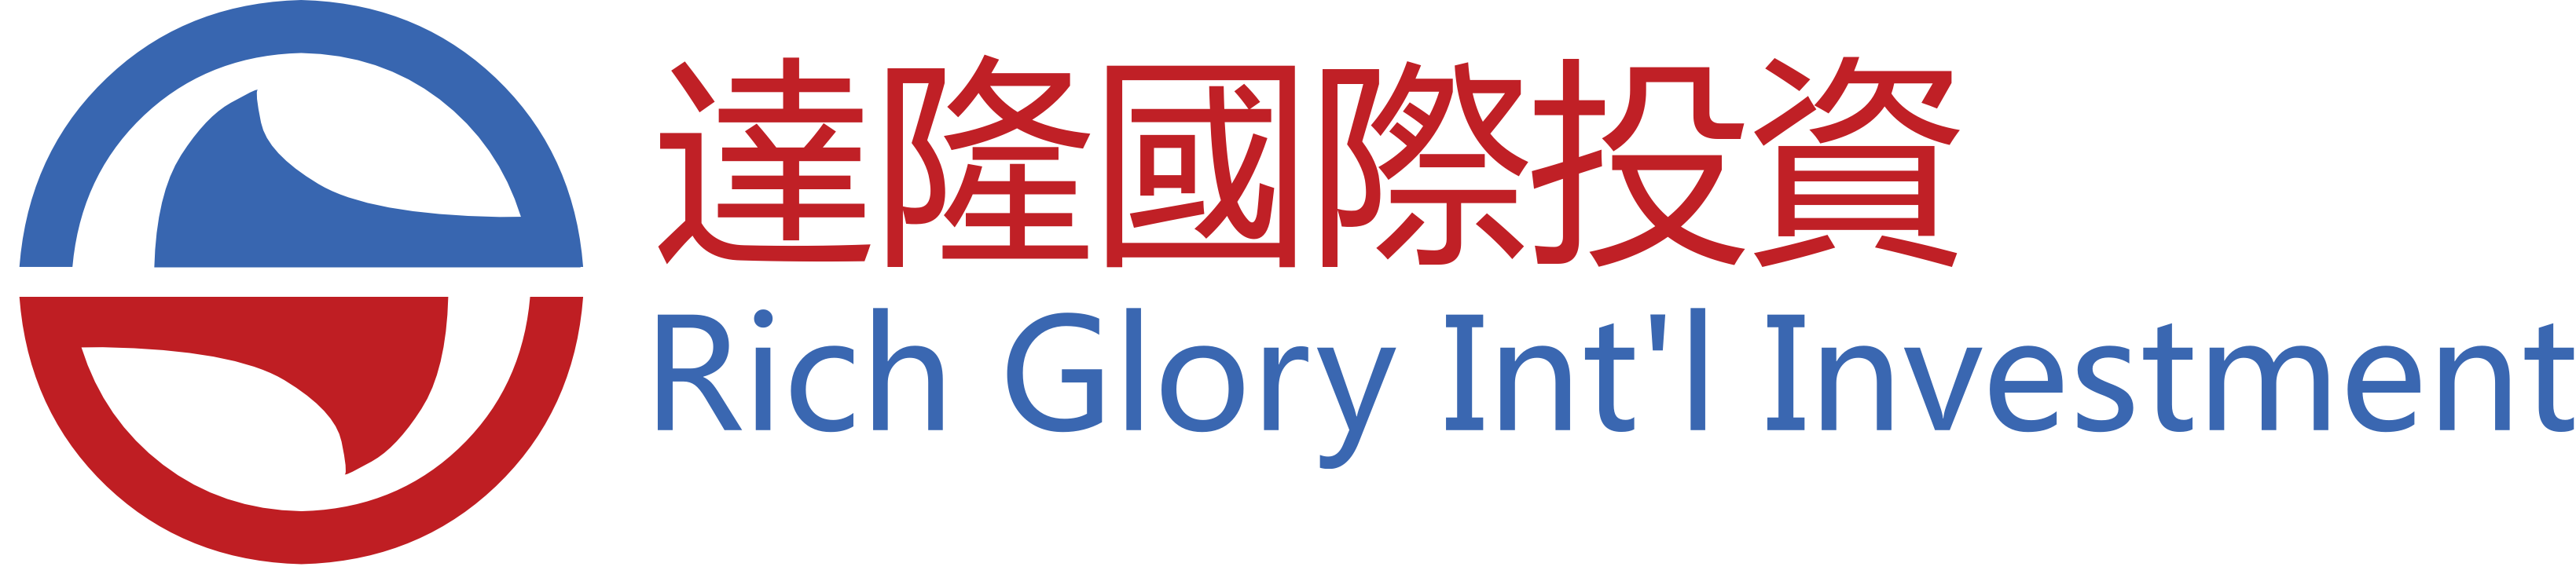 Rich Glory International Investment Limited